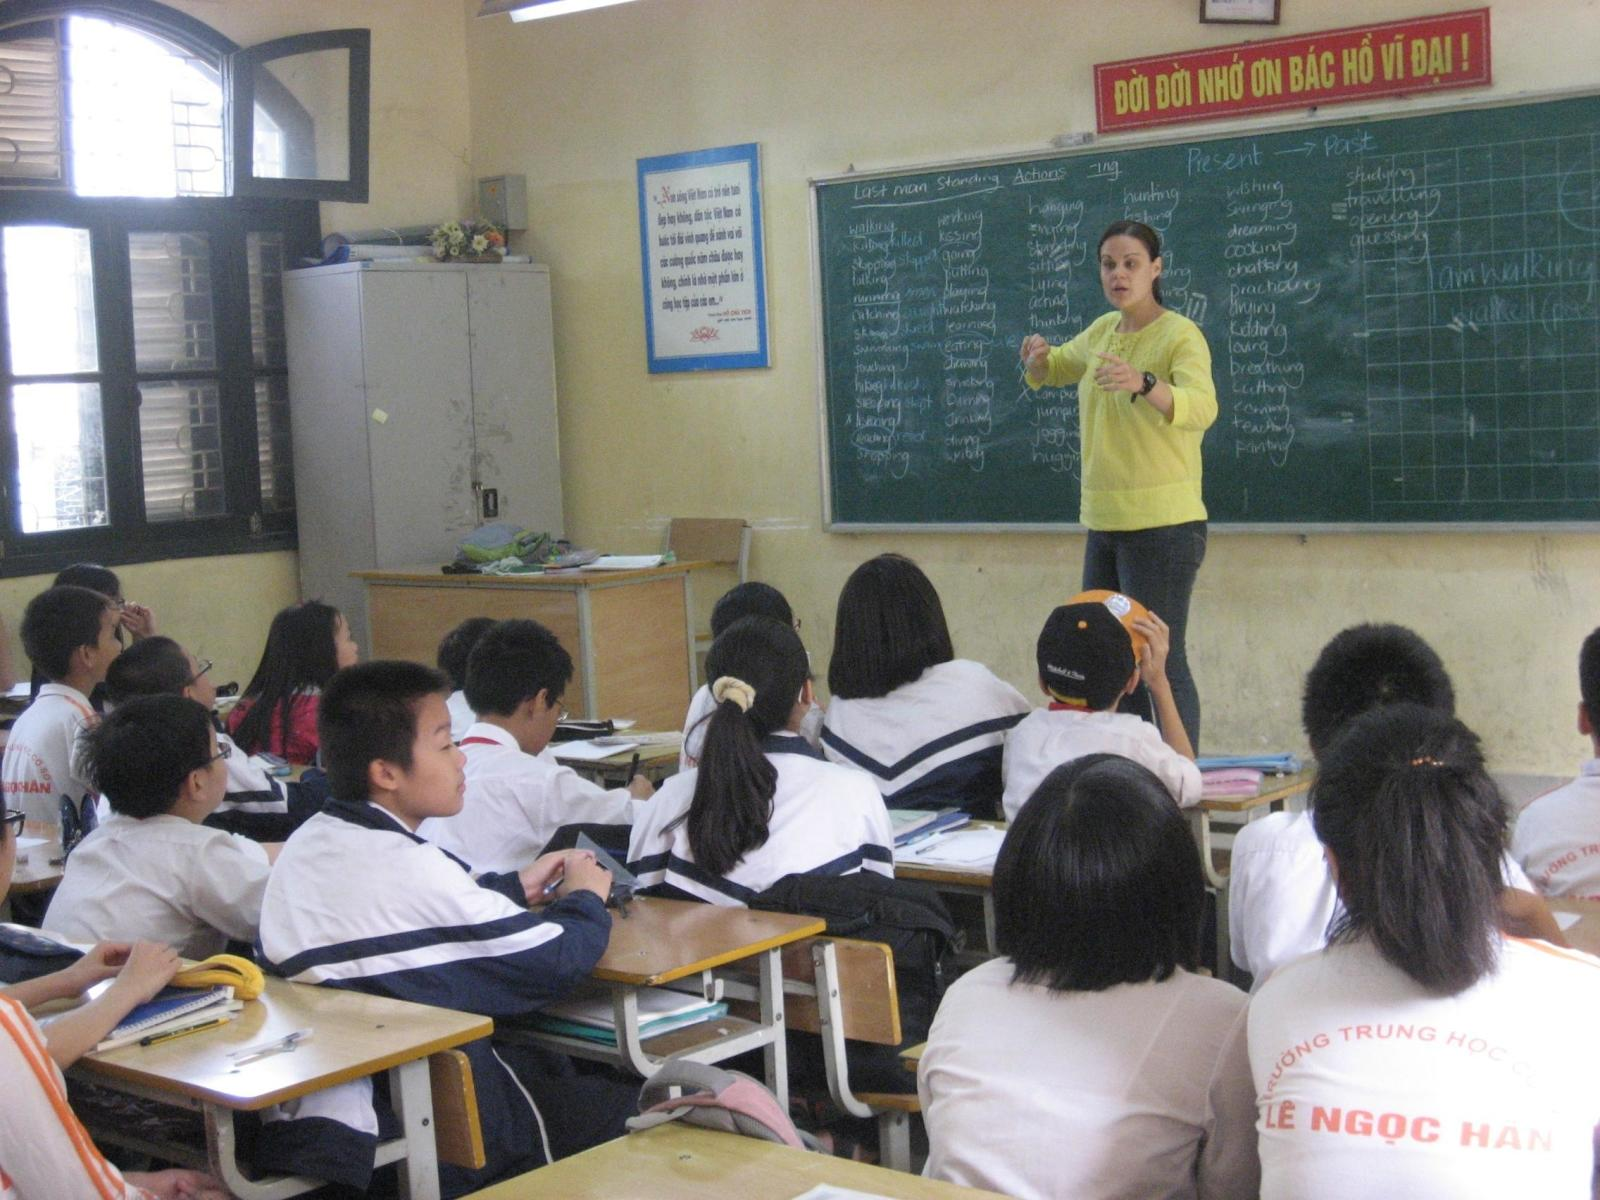 A volunteer teaching children literacy in a school in Vietnam